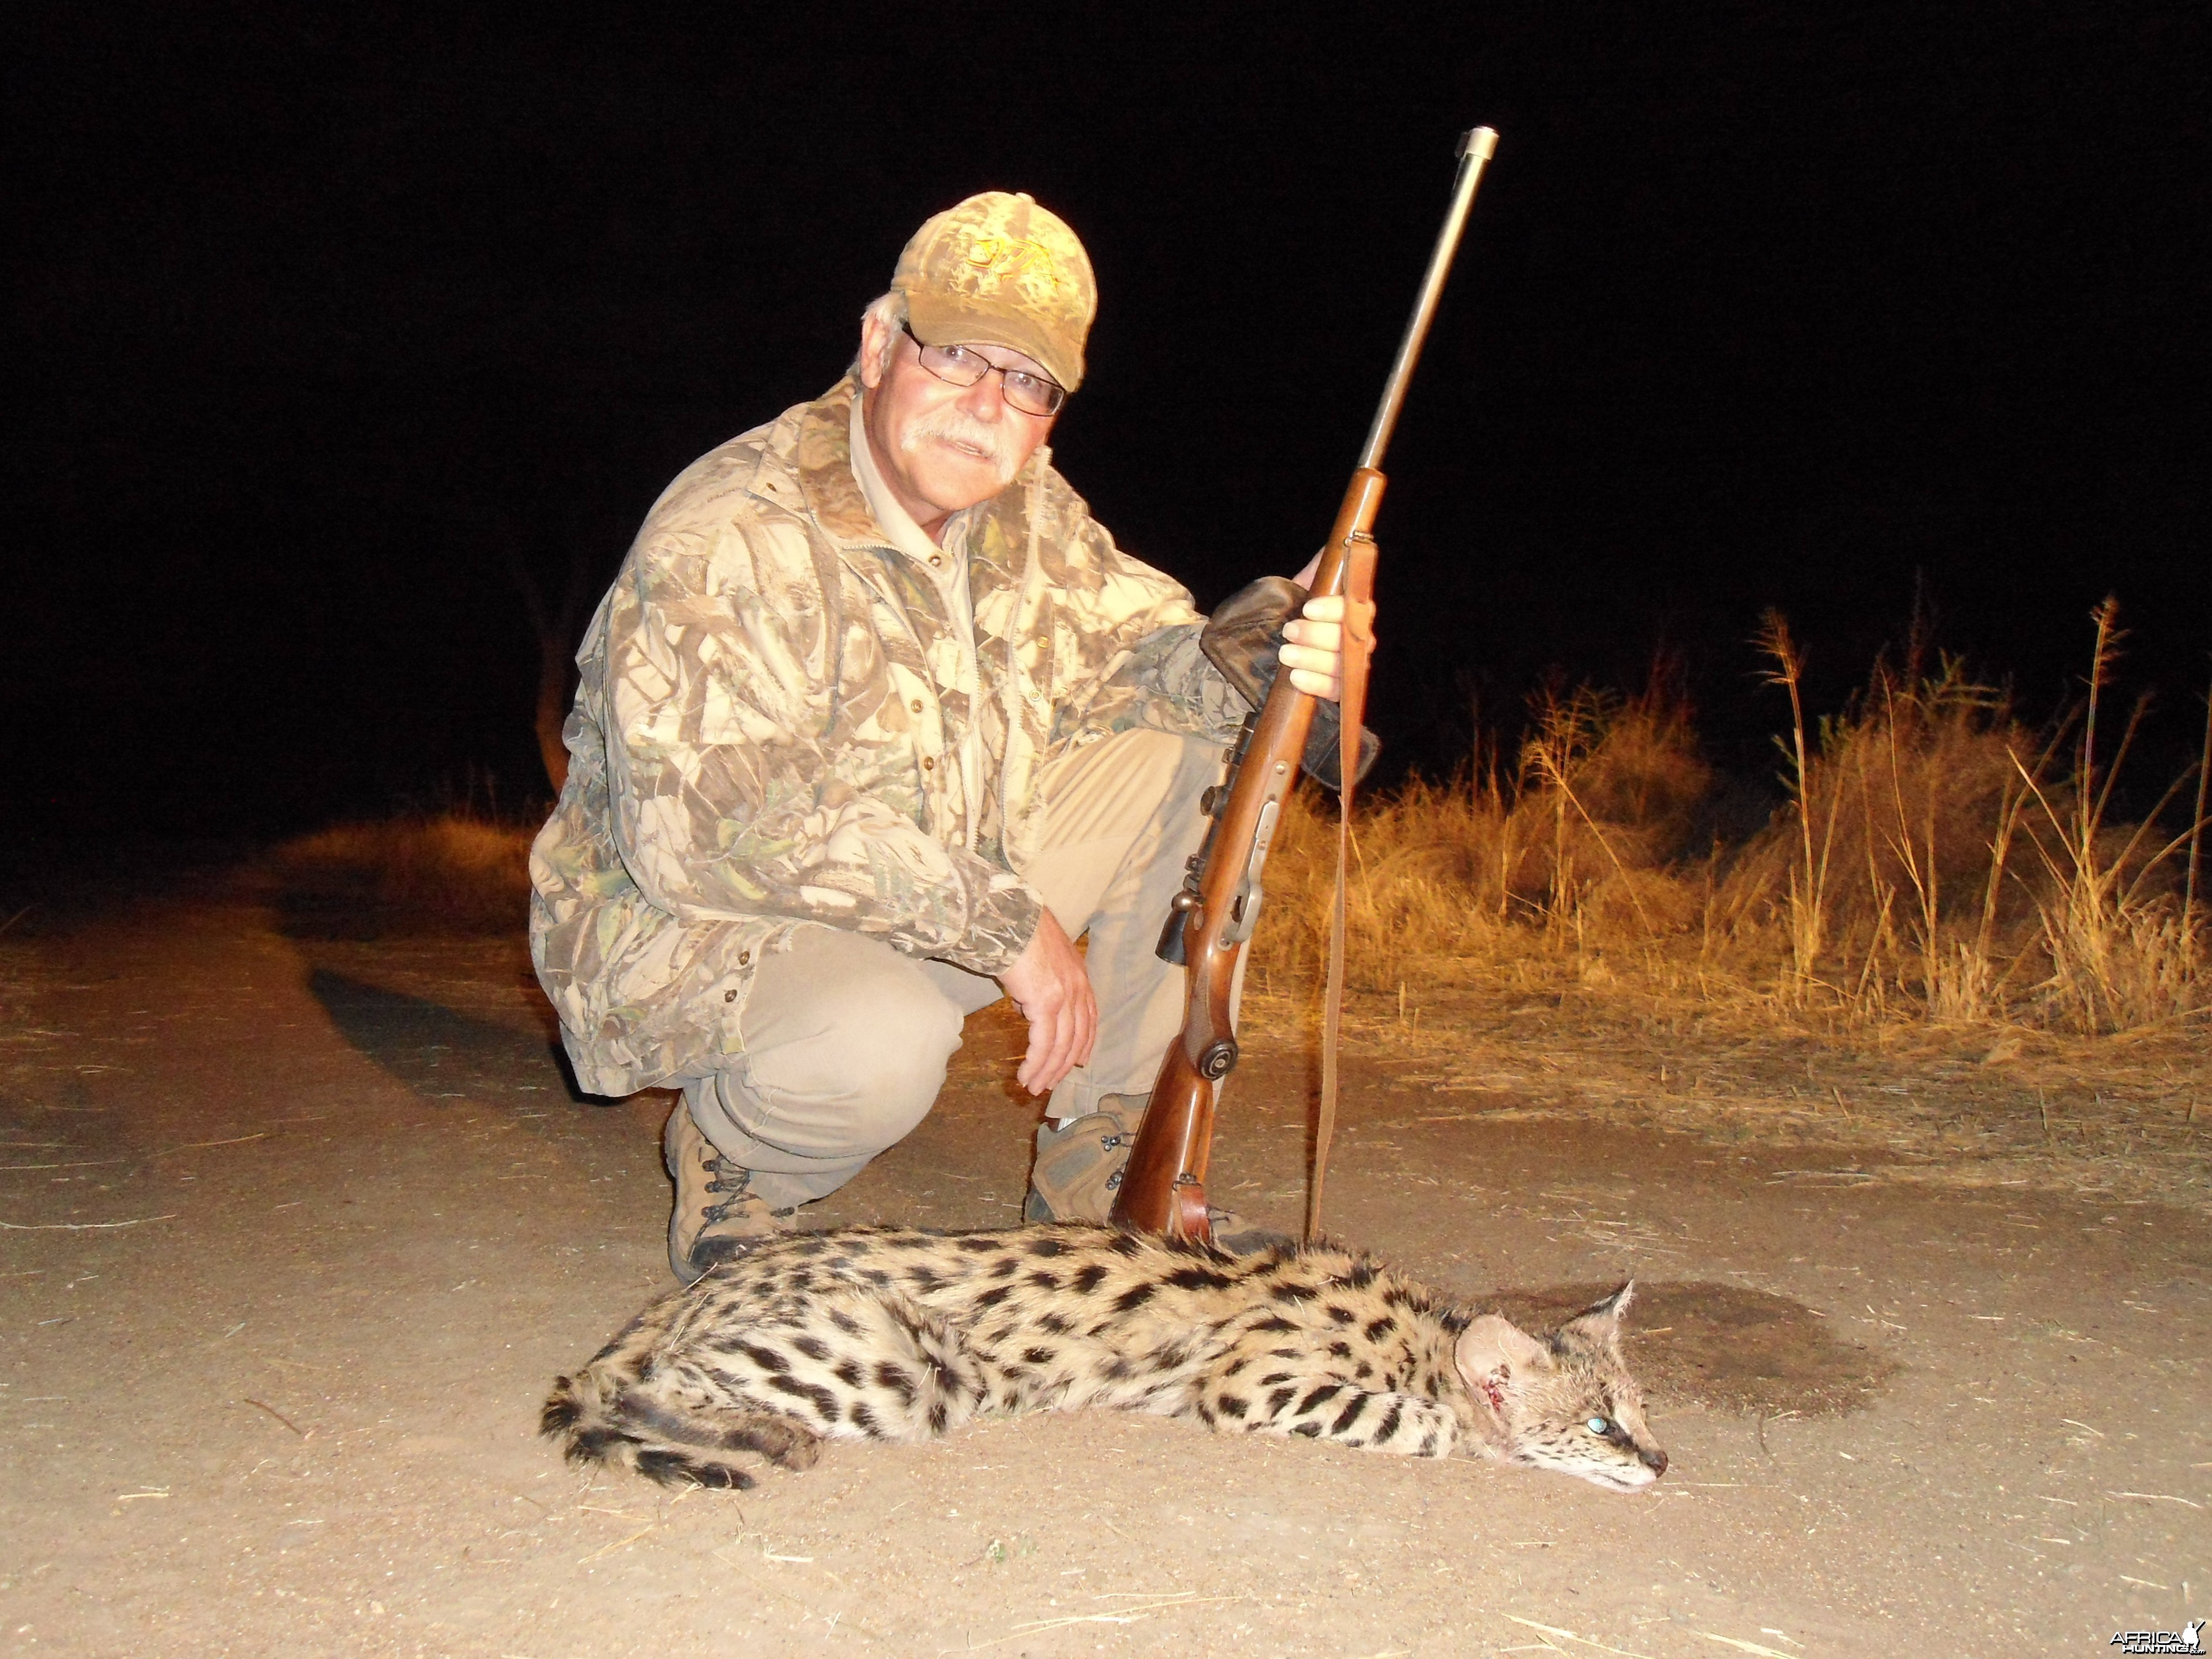 Hunting Serval in Namibia